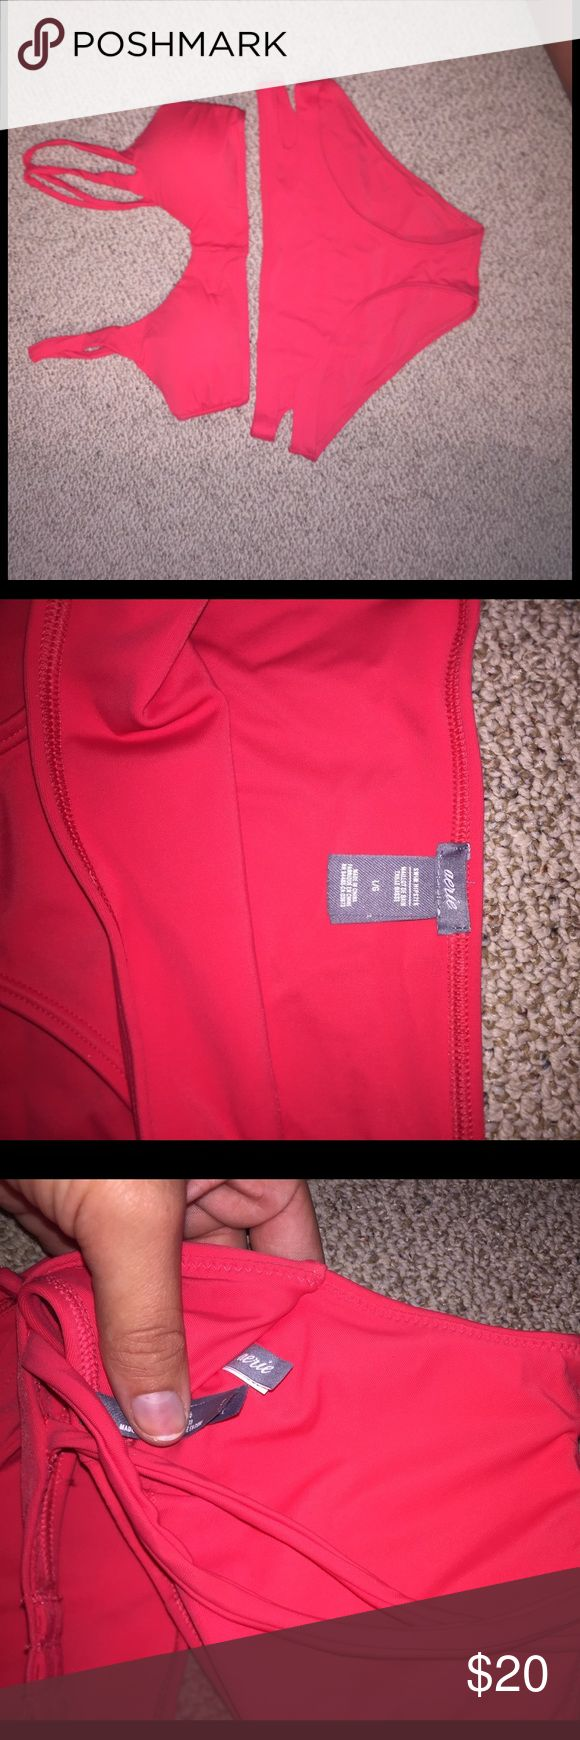 NEW ARIE BATHINGSUIT!! Never worn, only tried on. Does not fit my boobs-was hoping to lose the weight and never happened :/ open to reasonable offers! It's a beautiful suit American Eagle Outfitters Swim Bikinis